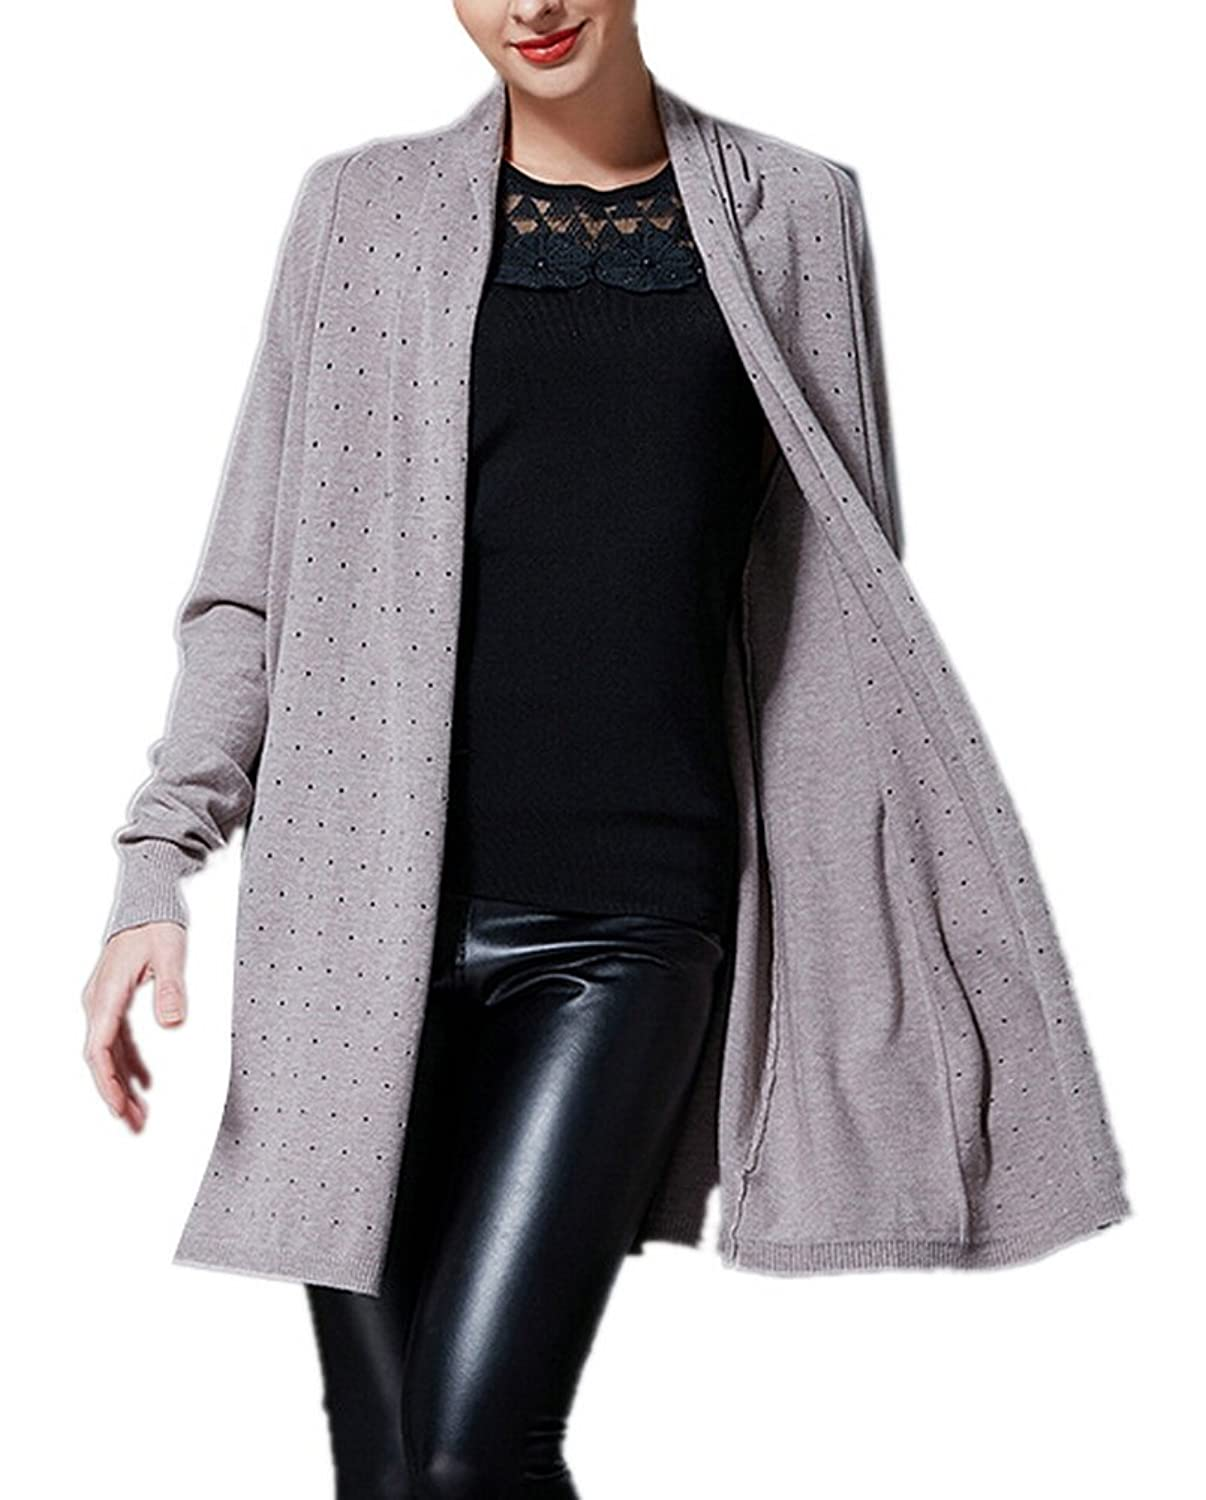 AZIZY Womens Hollow Out Long Sleeve Open Front Lightweight Long Cardigan Sweater